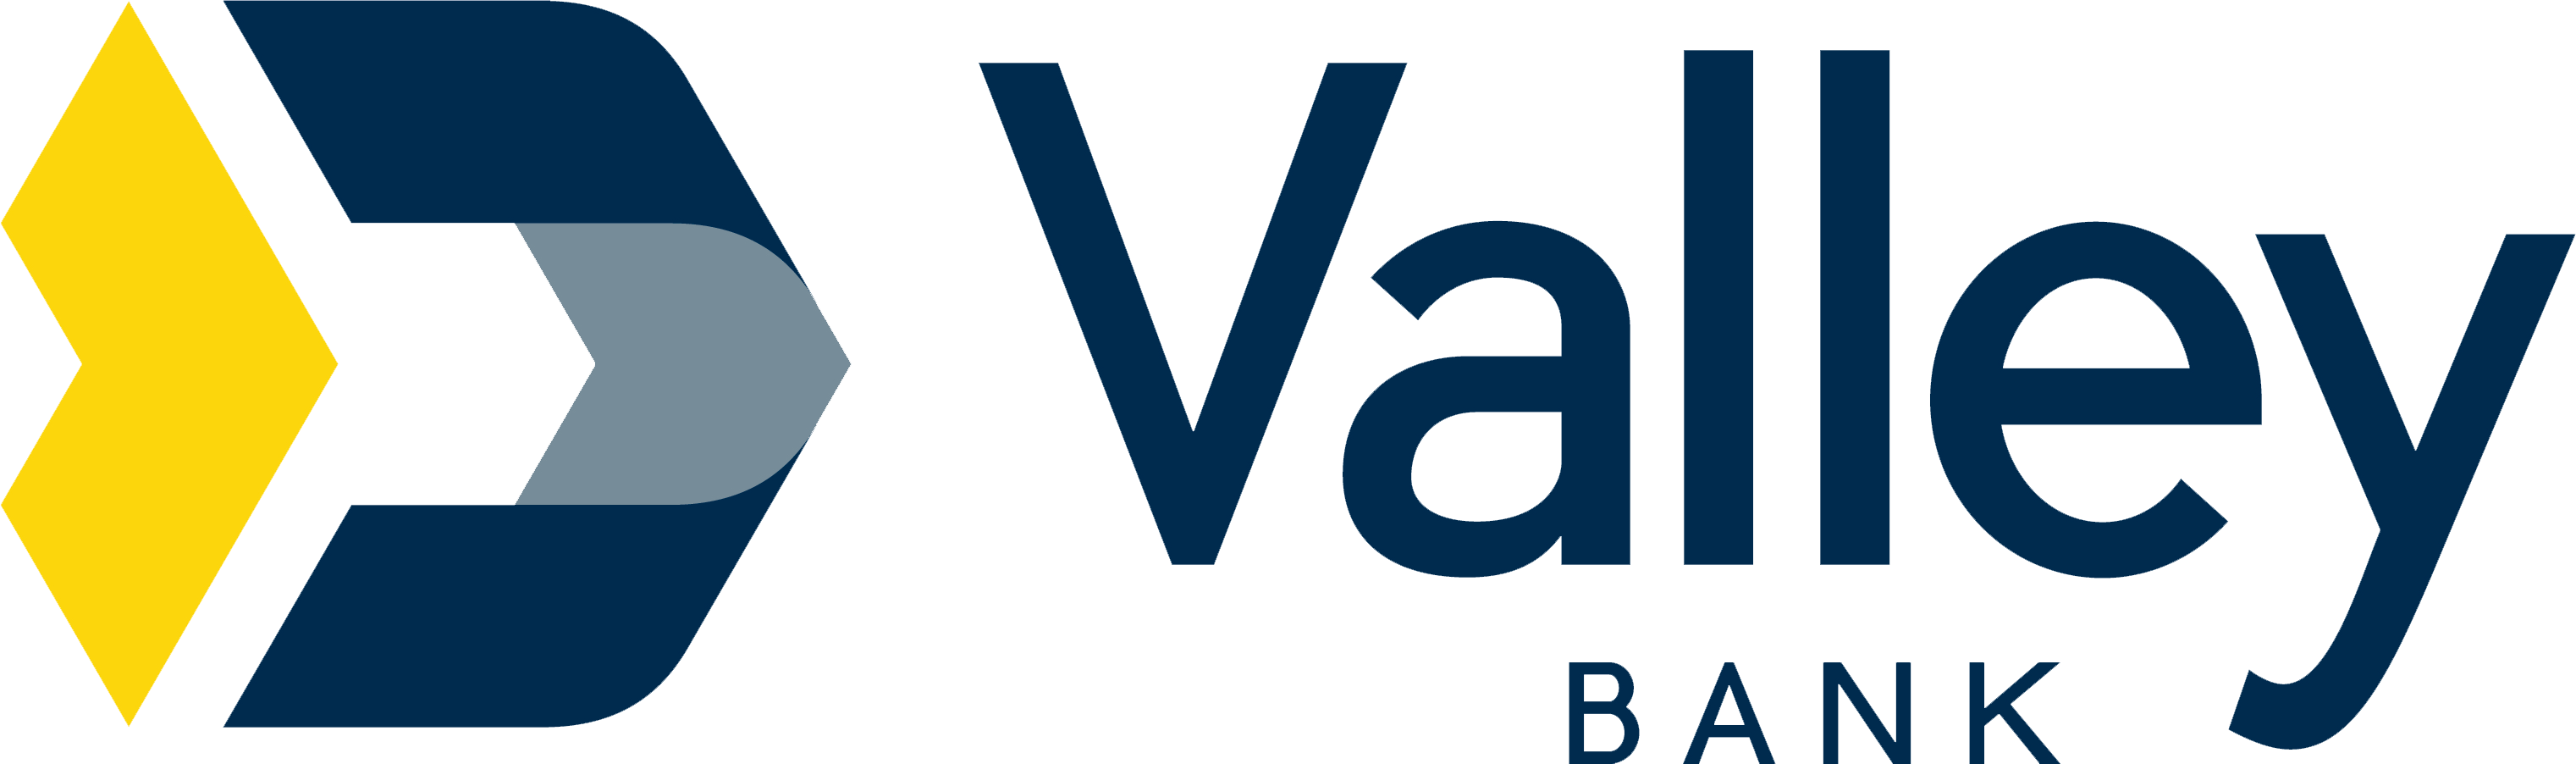 Valley-Logo-3C-H-Bank.png